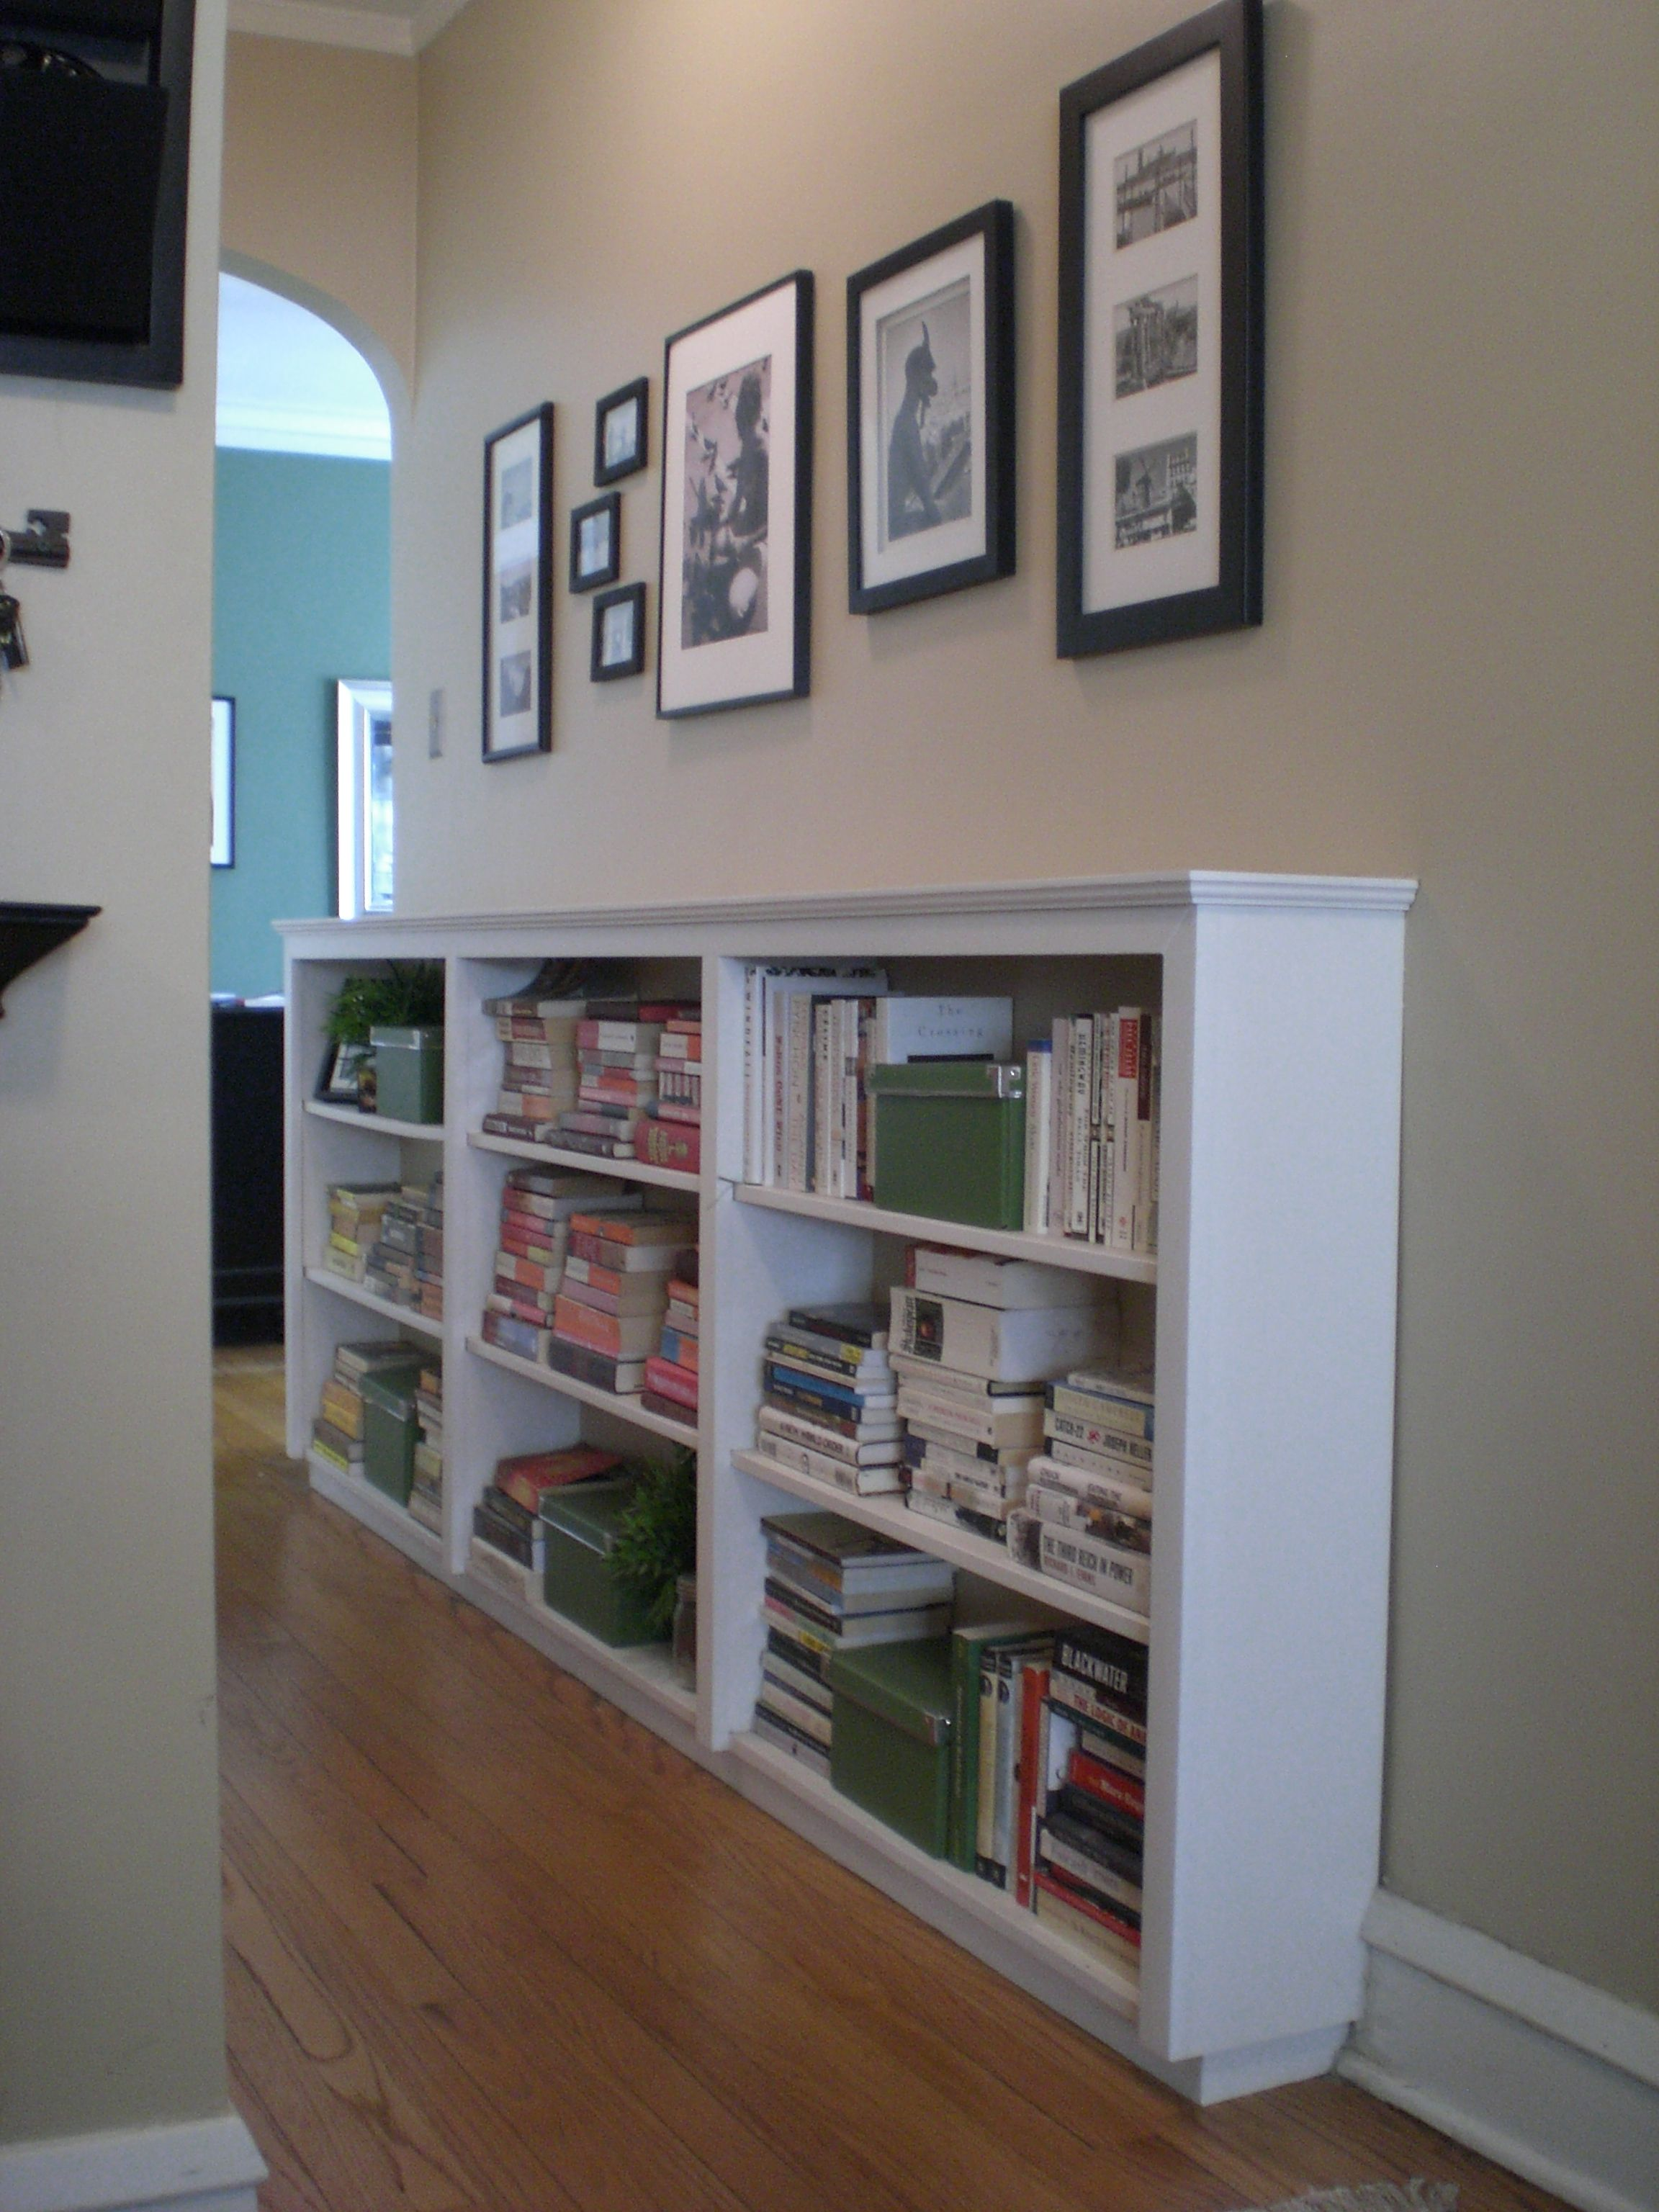 Finding space: hallway bookcases | Hall, Bed room and House